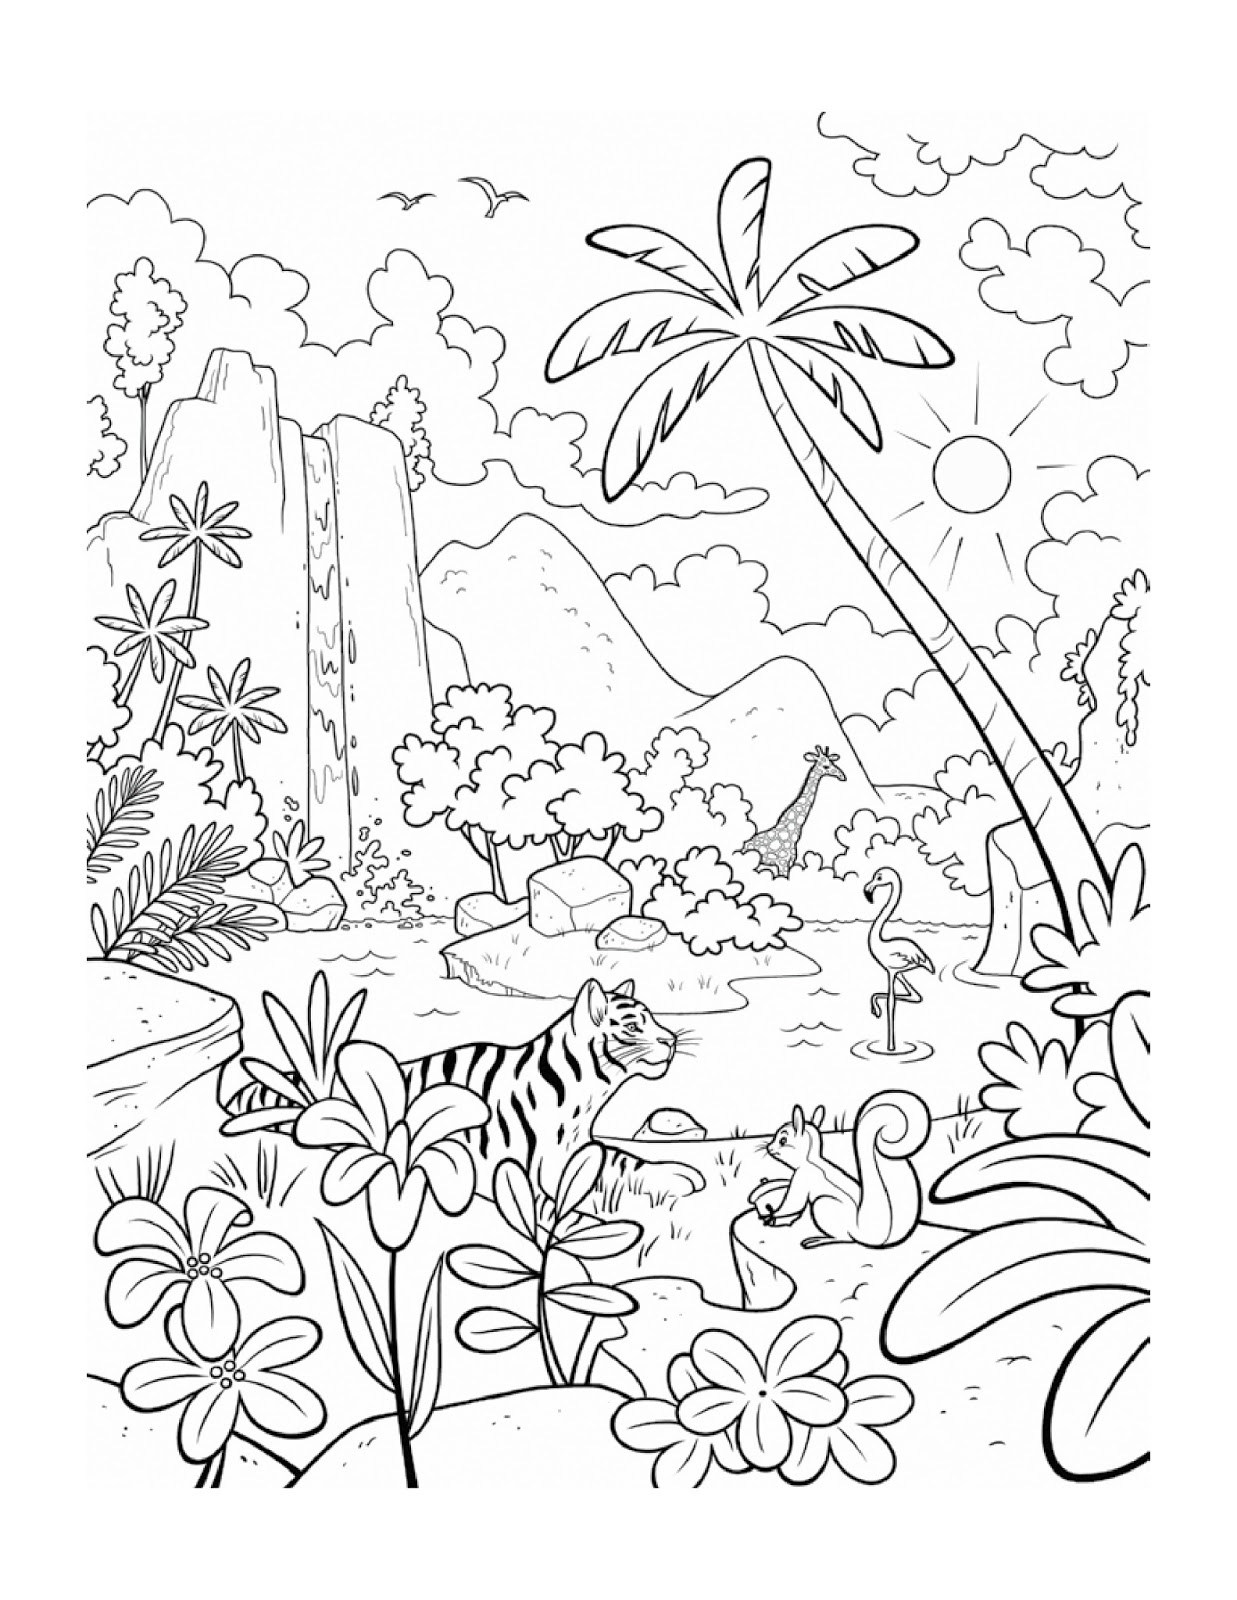 Coloring Pages Plants And Animals | Coloring Pages